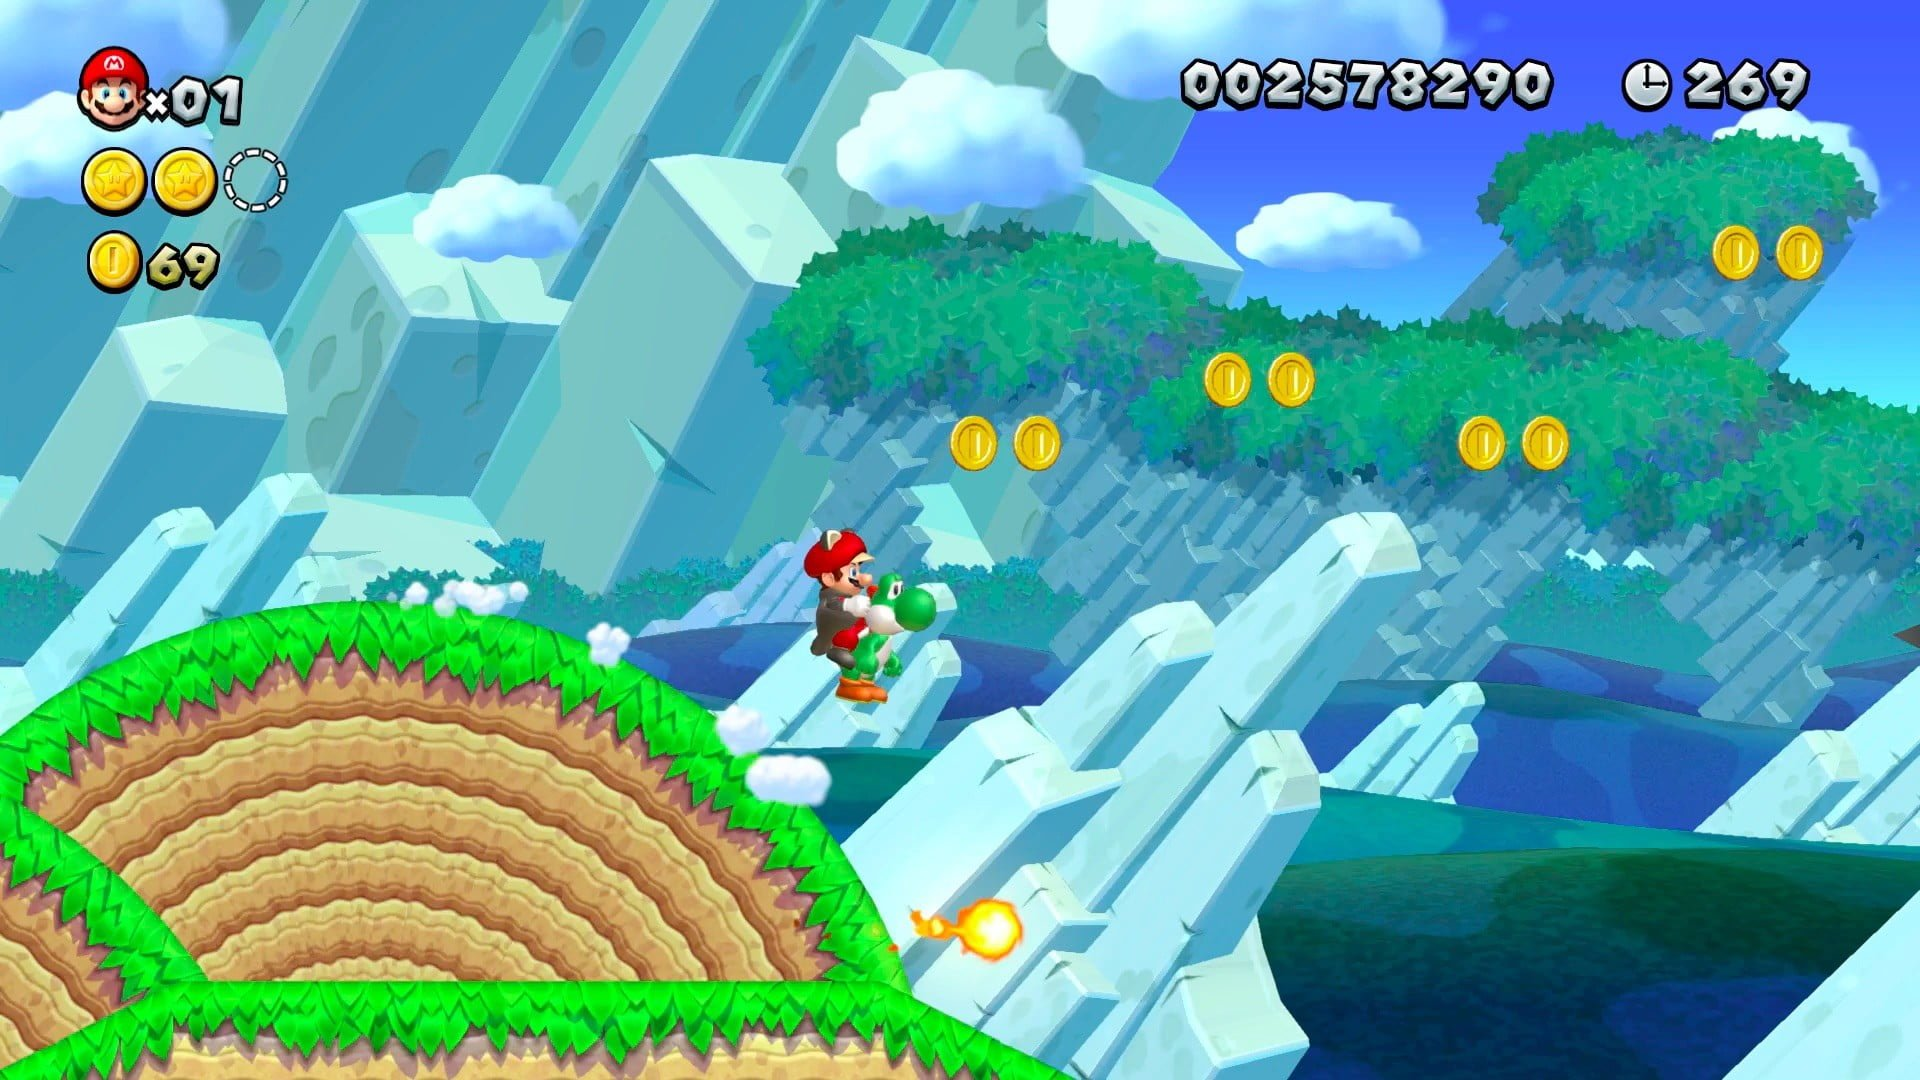 New Super Mario Bros. U Deluxe Action Screenshot